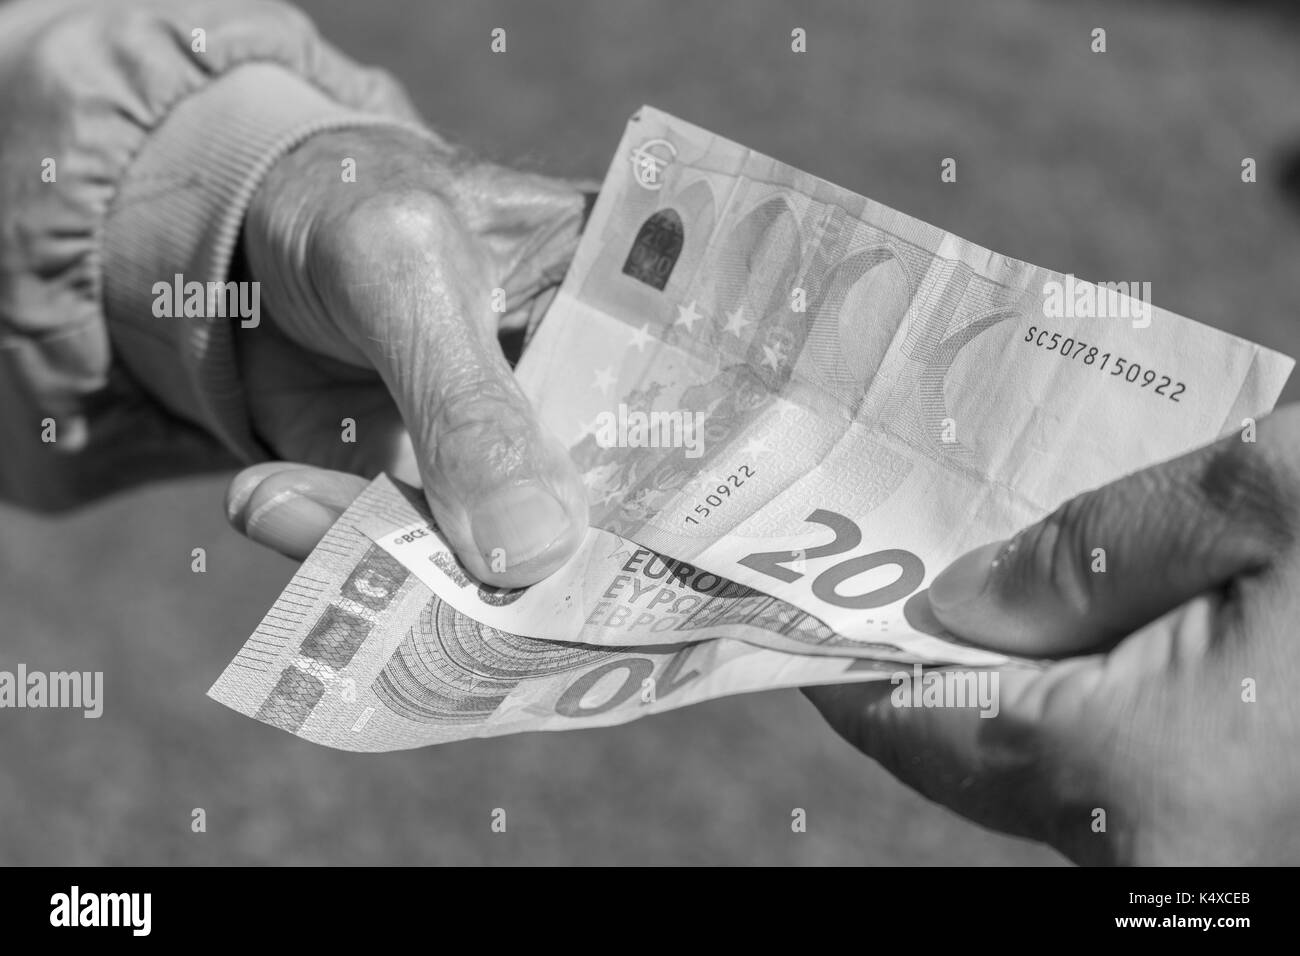 Senior man's hands holding Euro banknote.  pensioners concept. - Stock Image